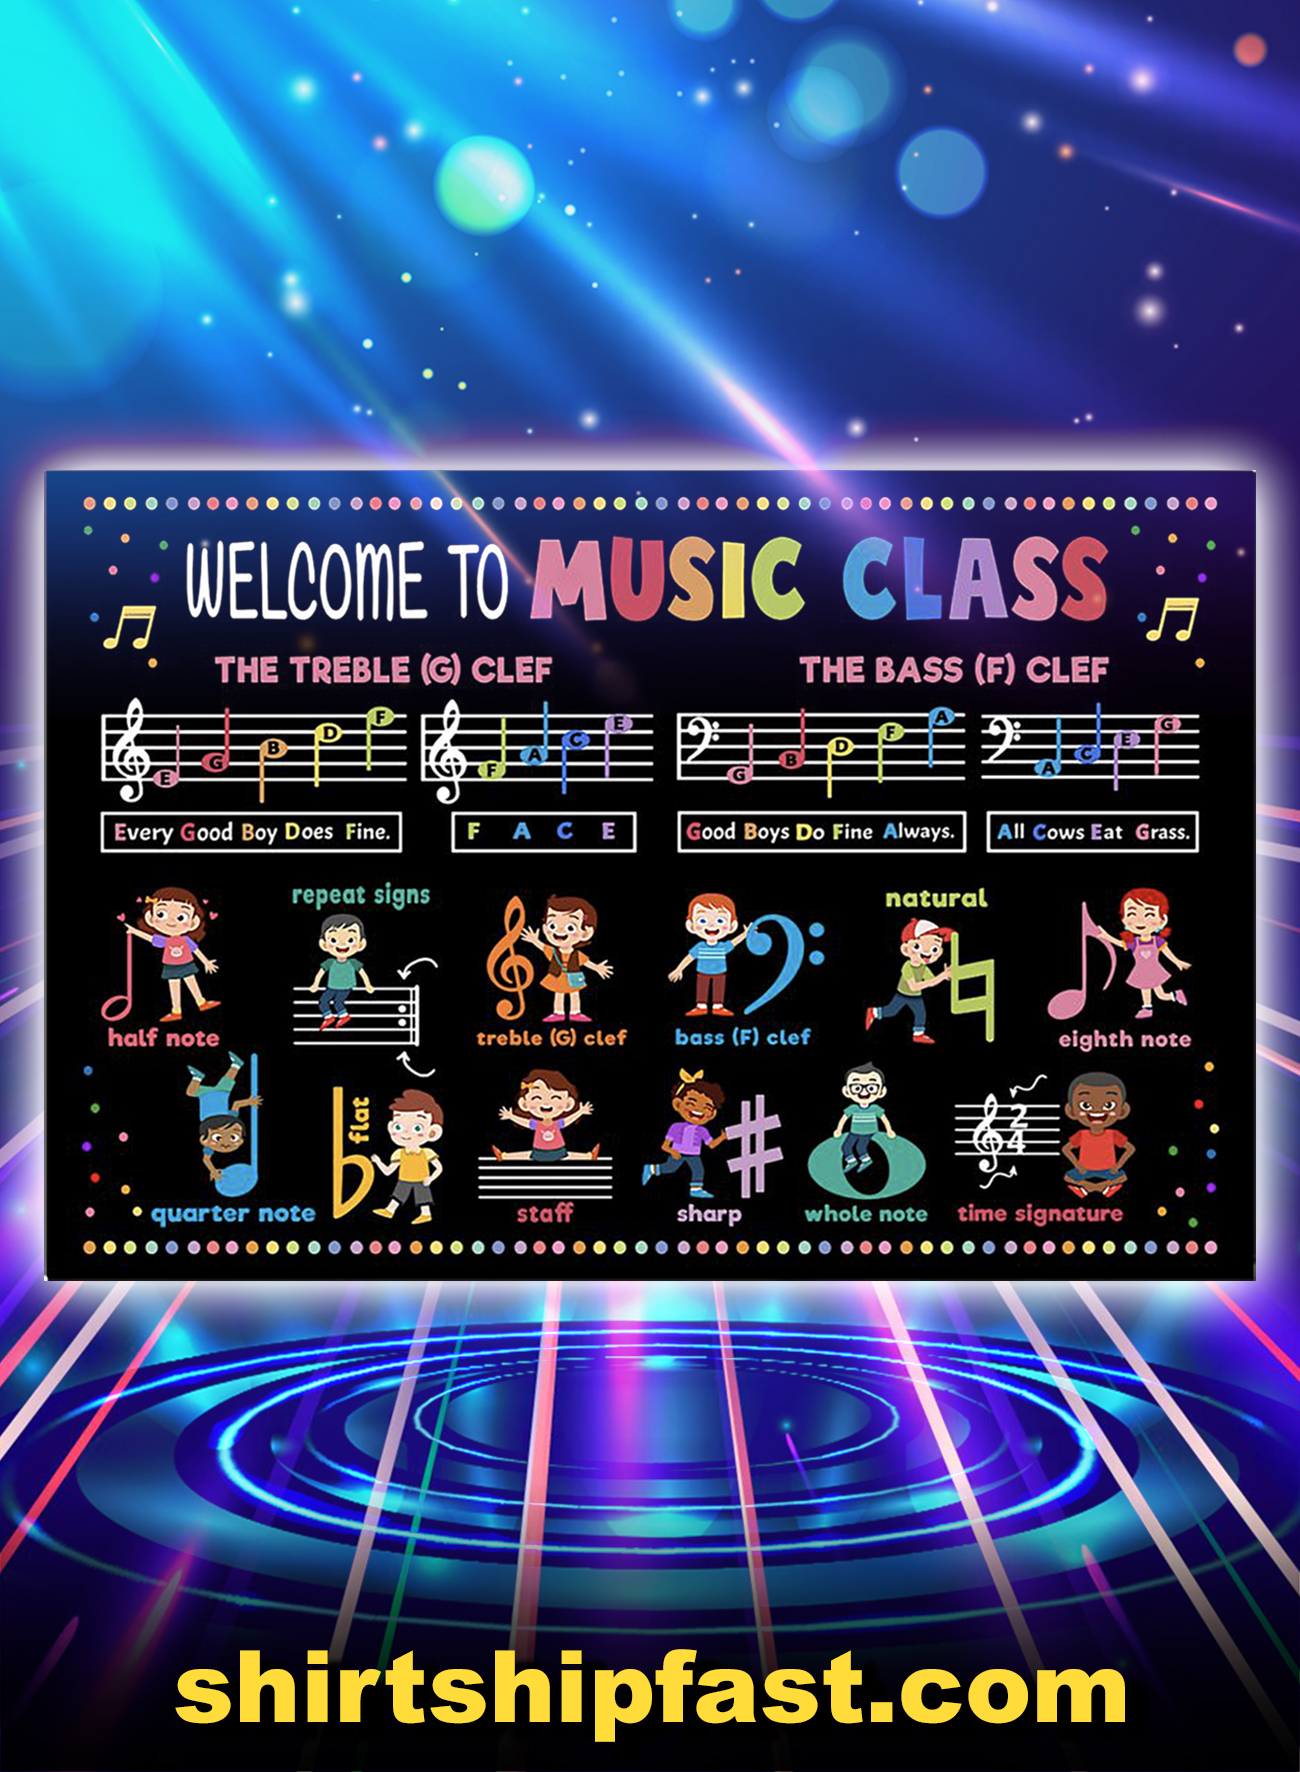 Welcome to music class poster - A1